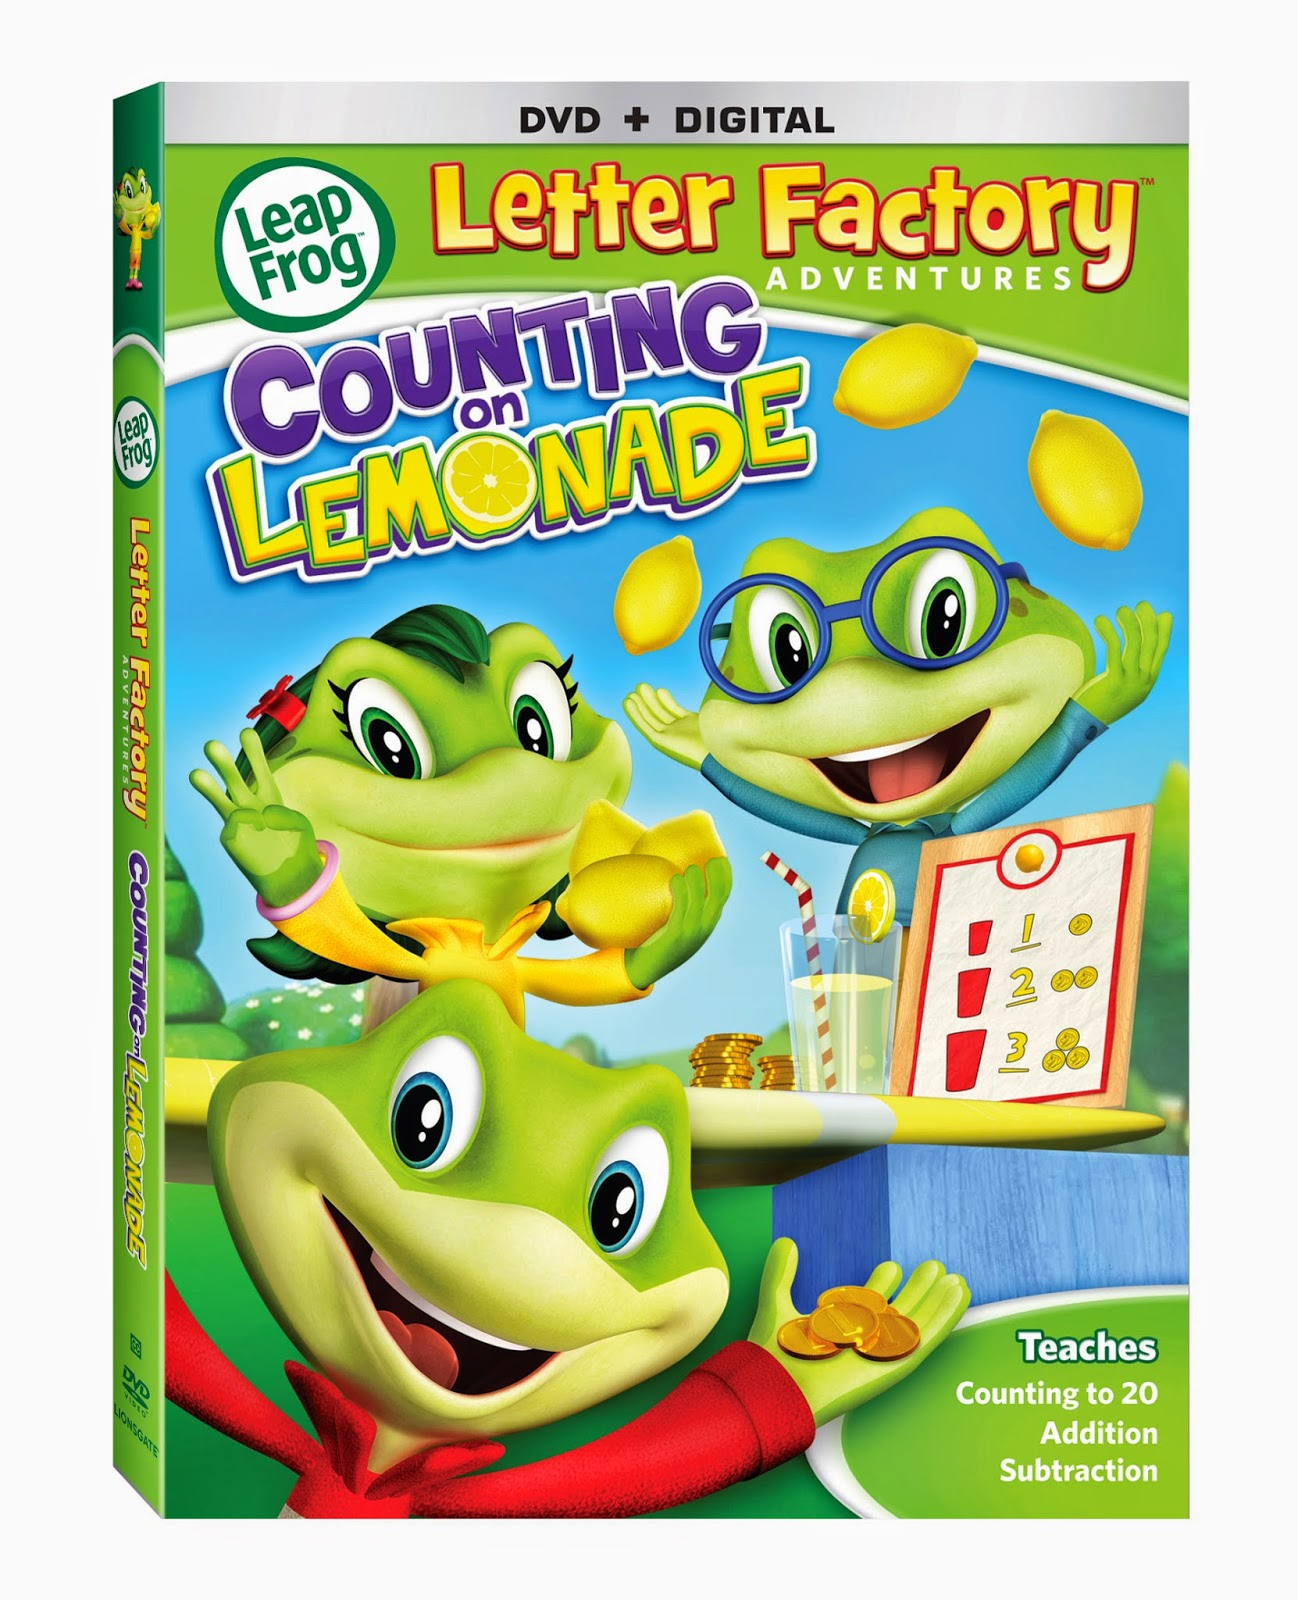 leapfrog letter factory adventures counting on lemonade With leapfrog letter factory adventures counting on lemonade